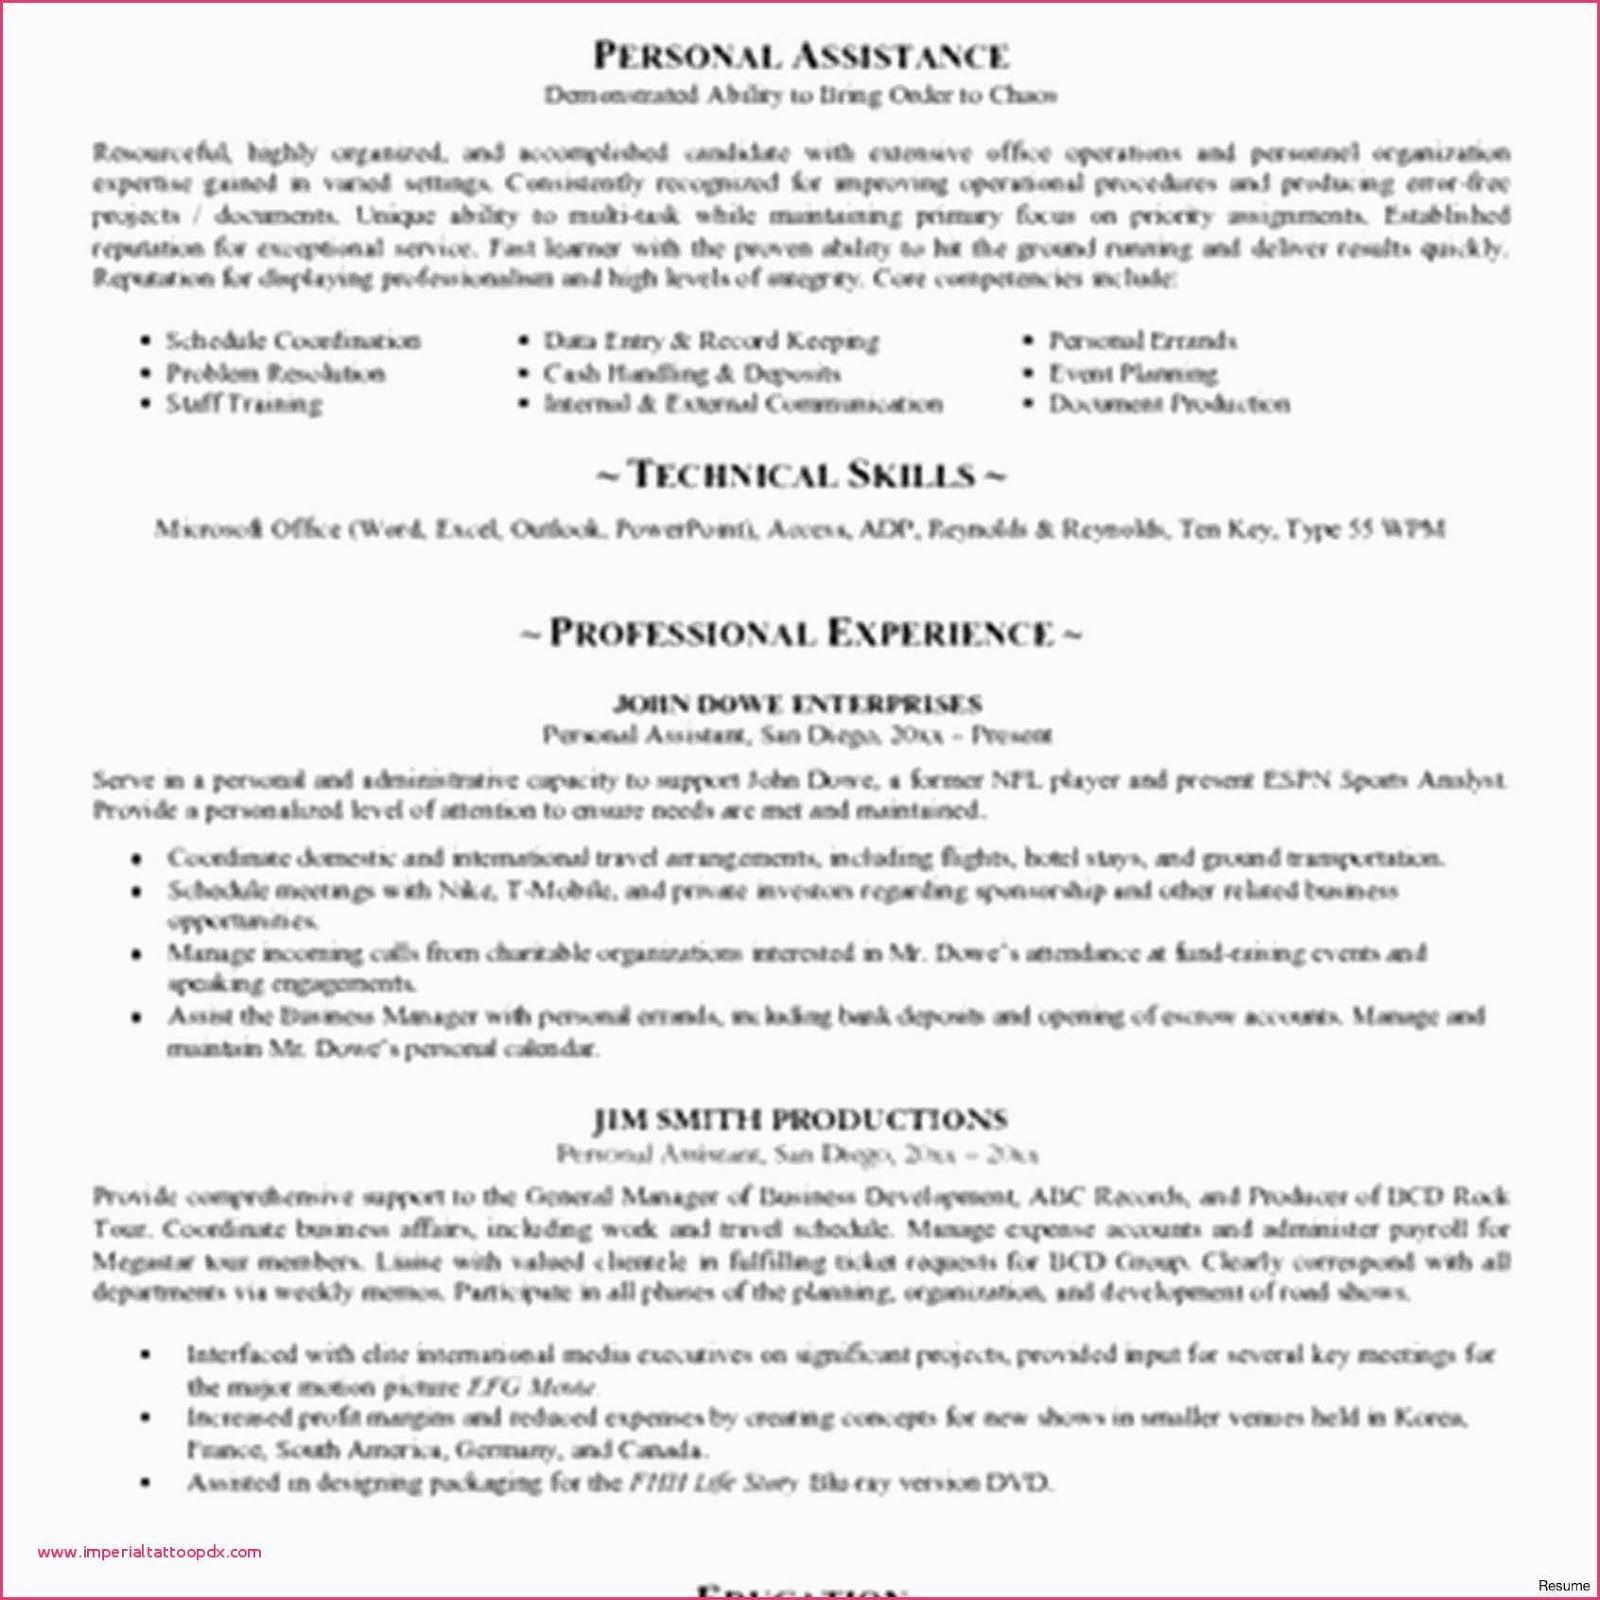 Administrative Assistant Resume, administrative assistant